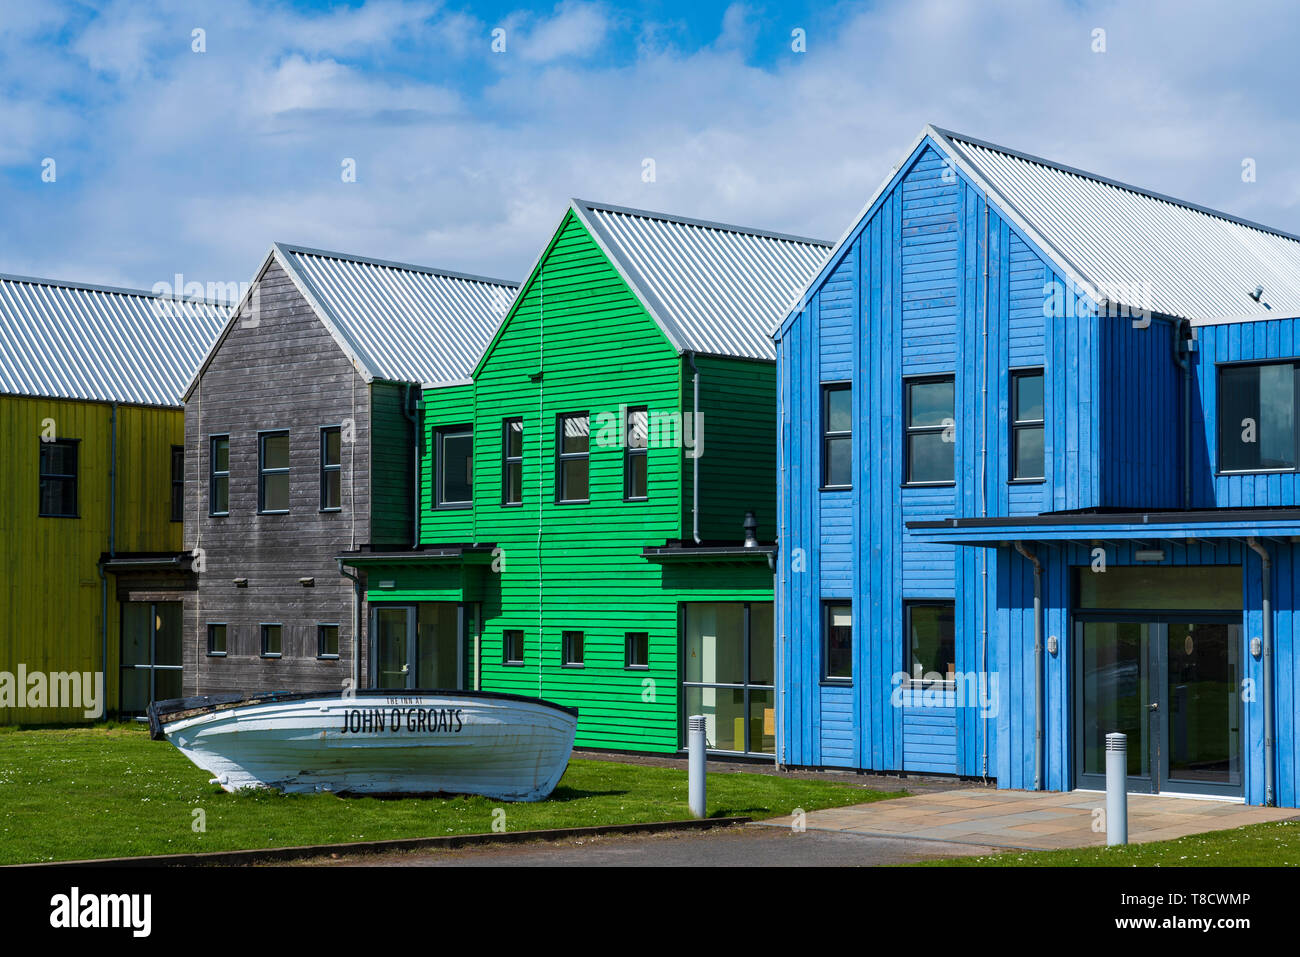 The Inn at John O' Groats colourful modern architecture of hotel at John O'Groats on  North Coast 500 scenic driving route in northern Scotland, UK - Stock Image